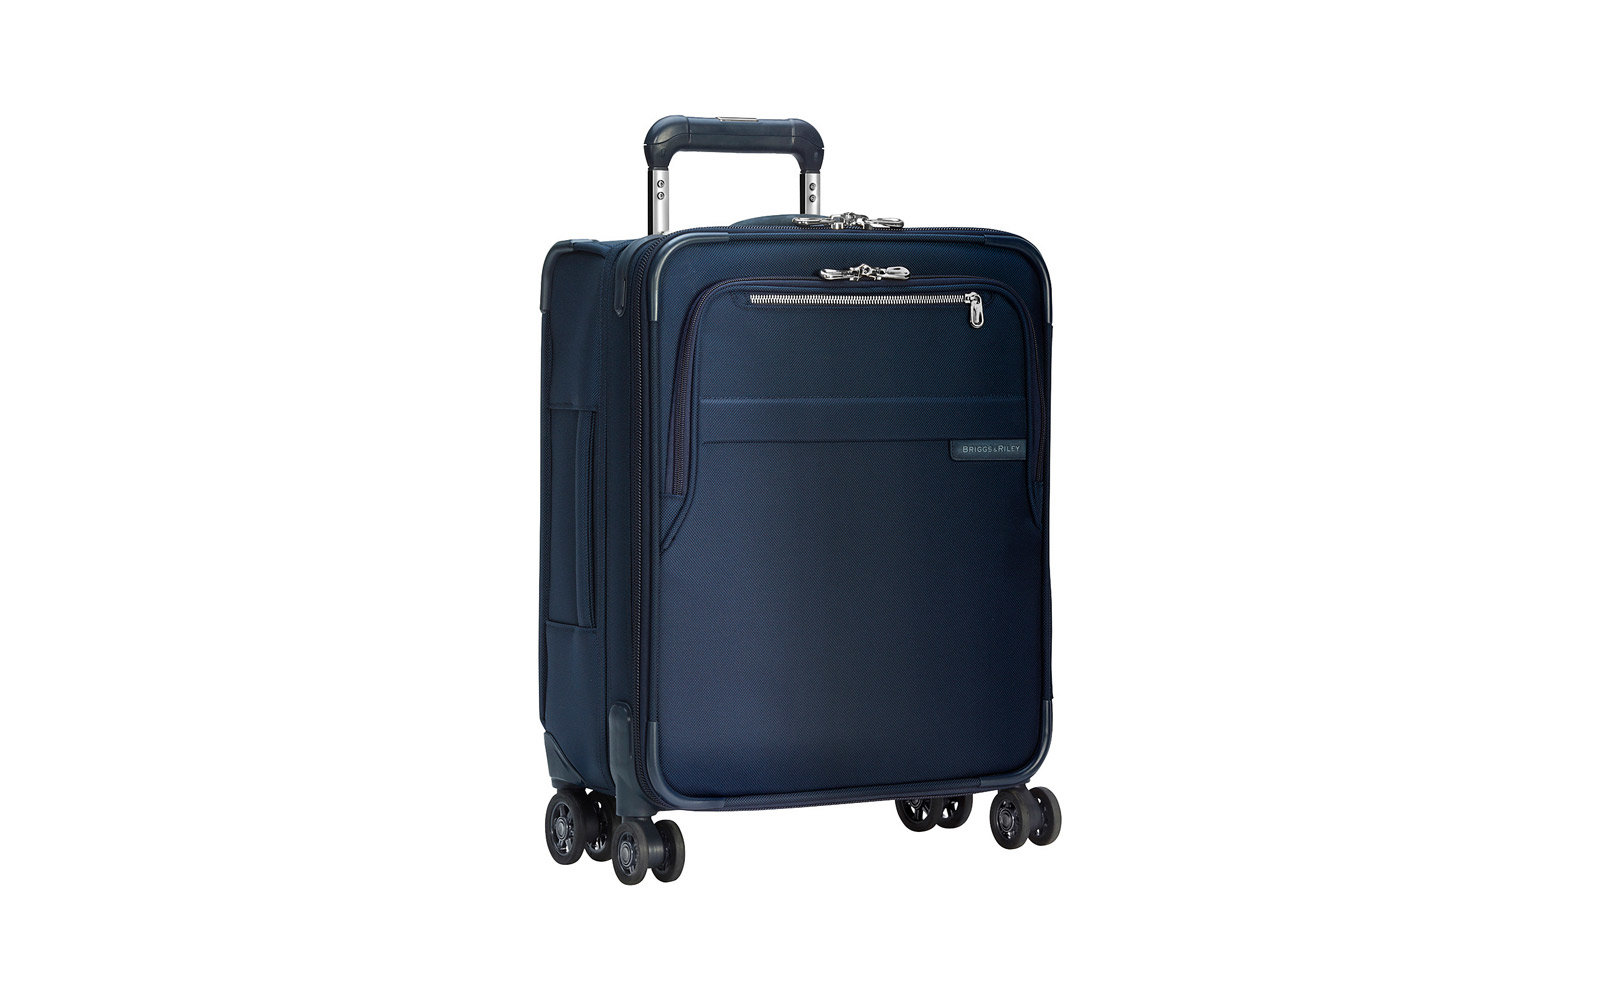 Best International Carry-on: Briggs & Riley Baseline CX International Carry-on Spinner